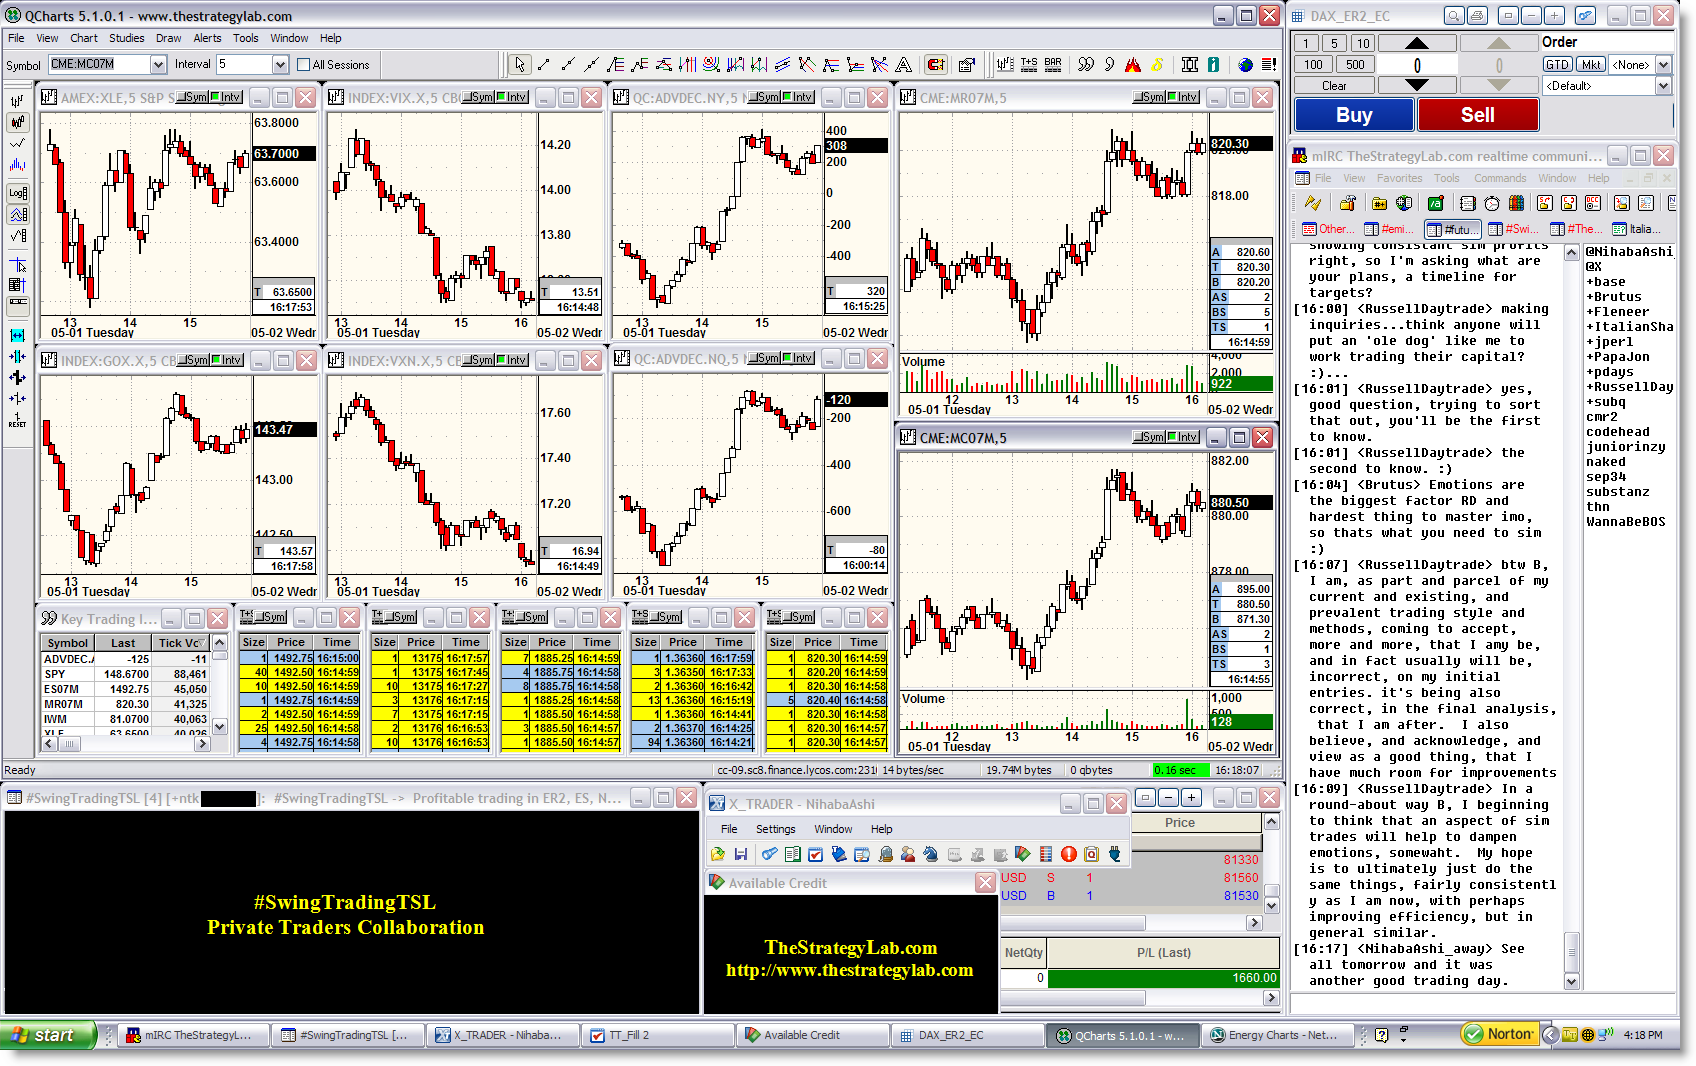 Irc forex room